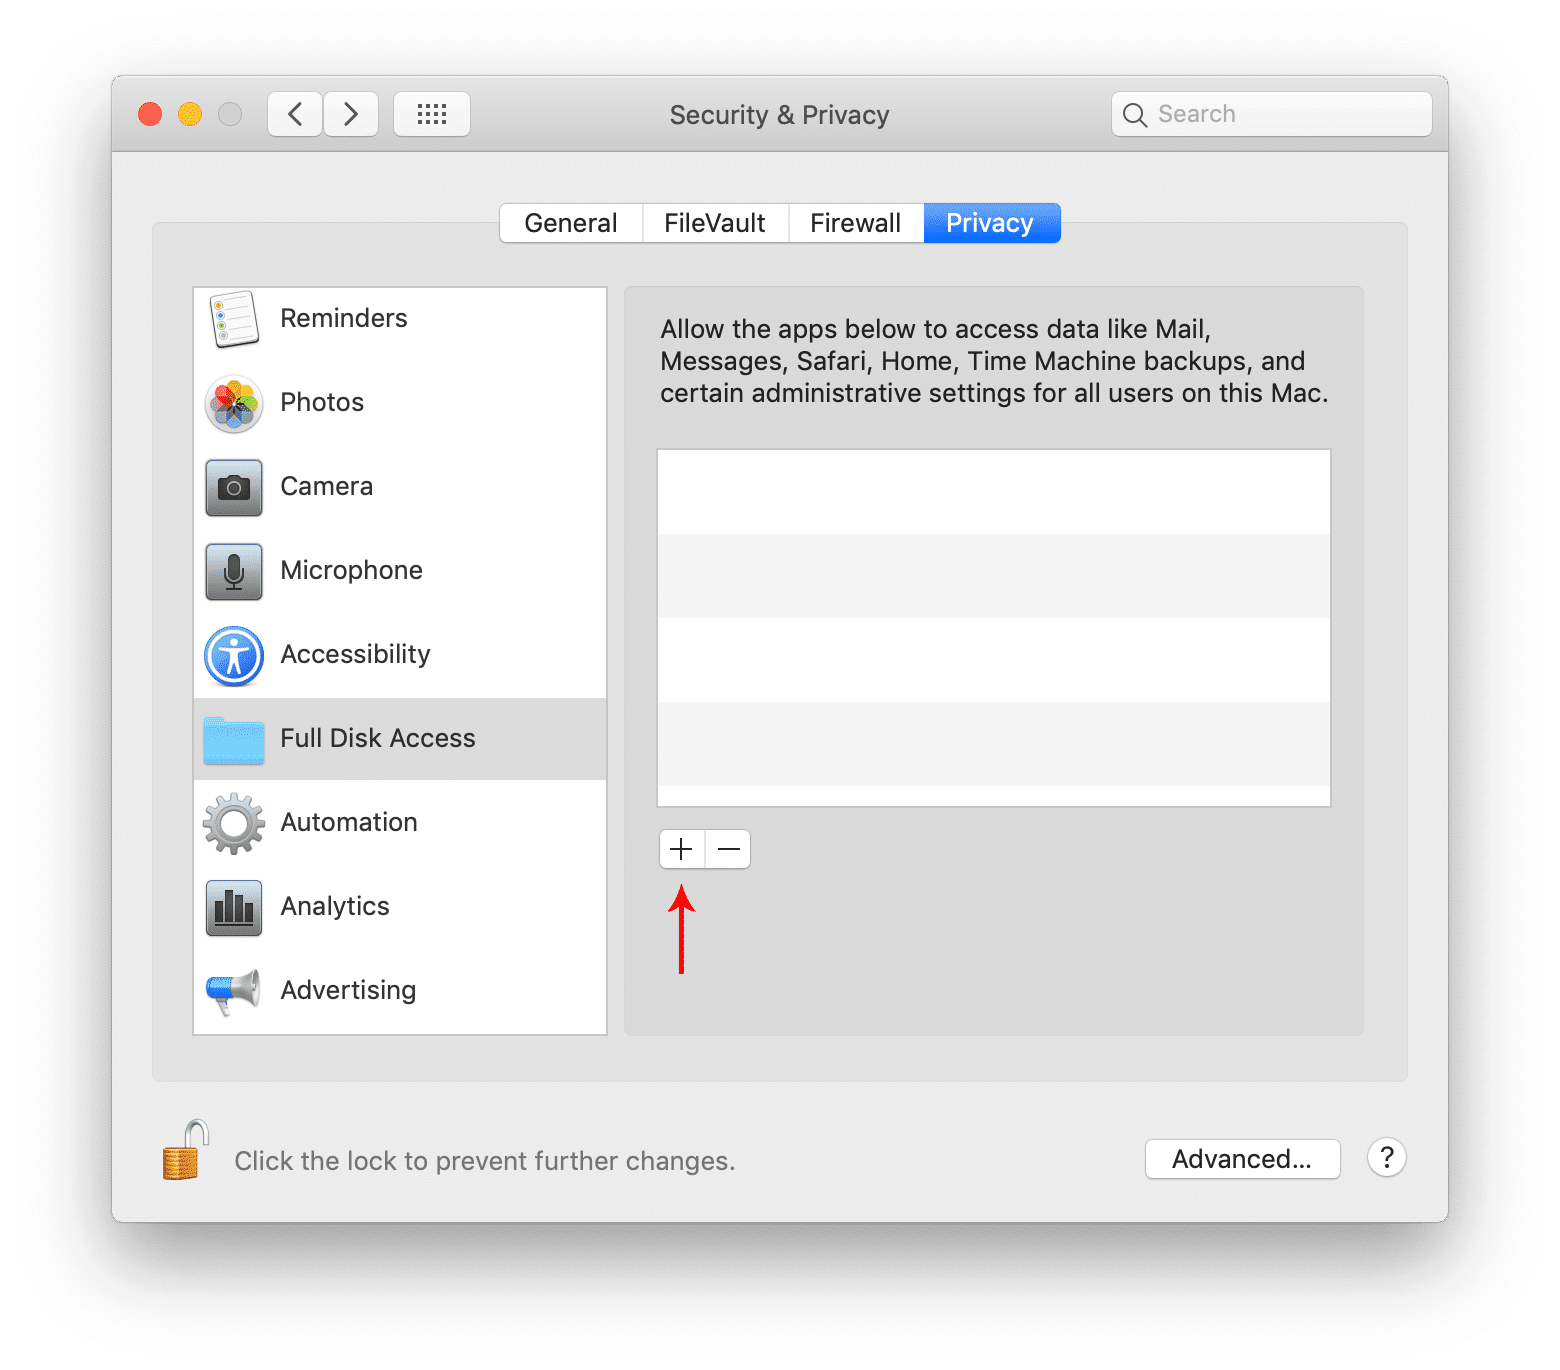 Full disk access on macOS Catalina